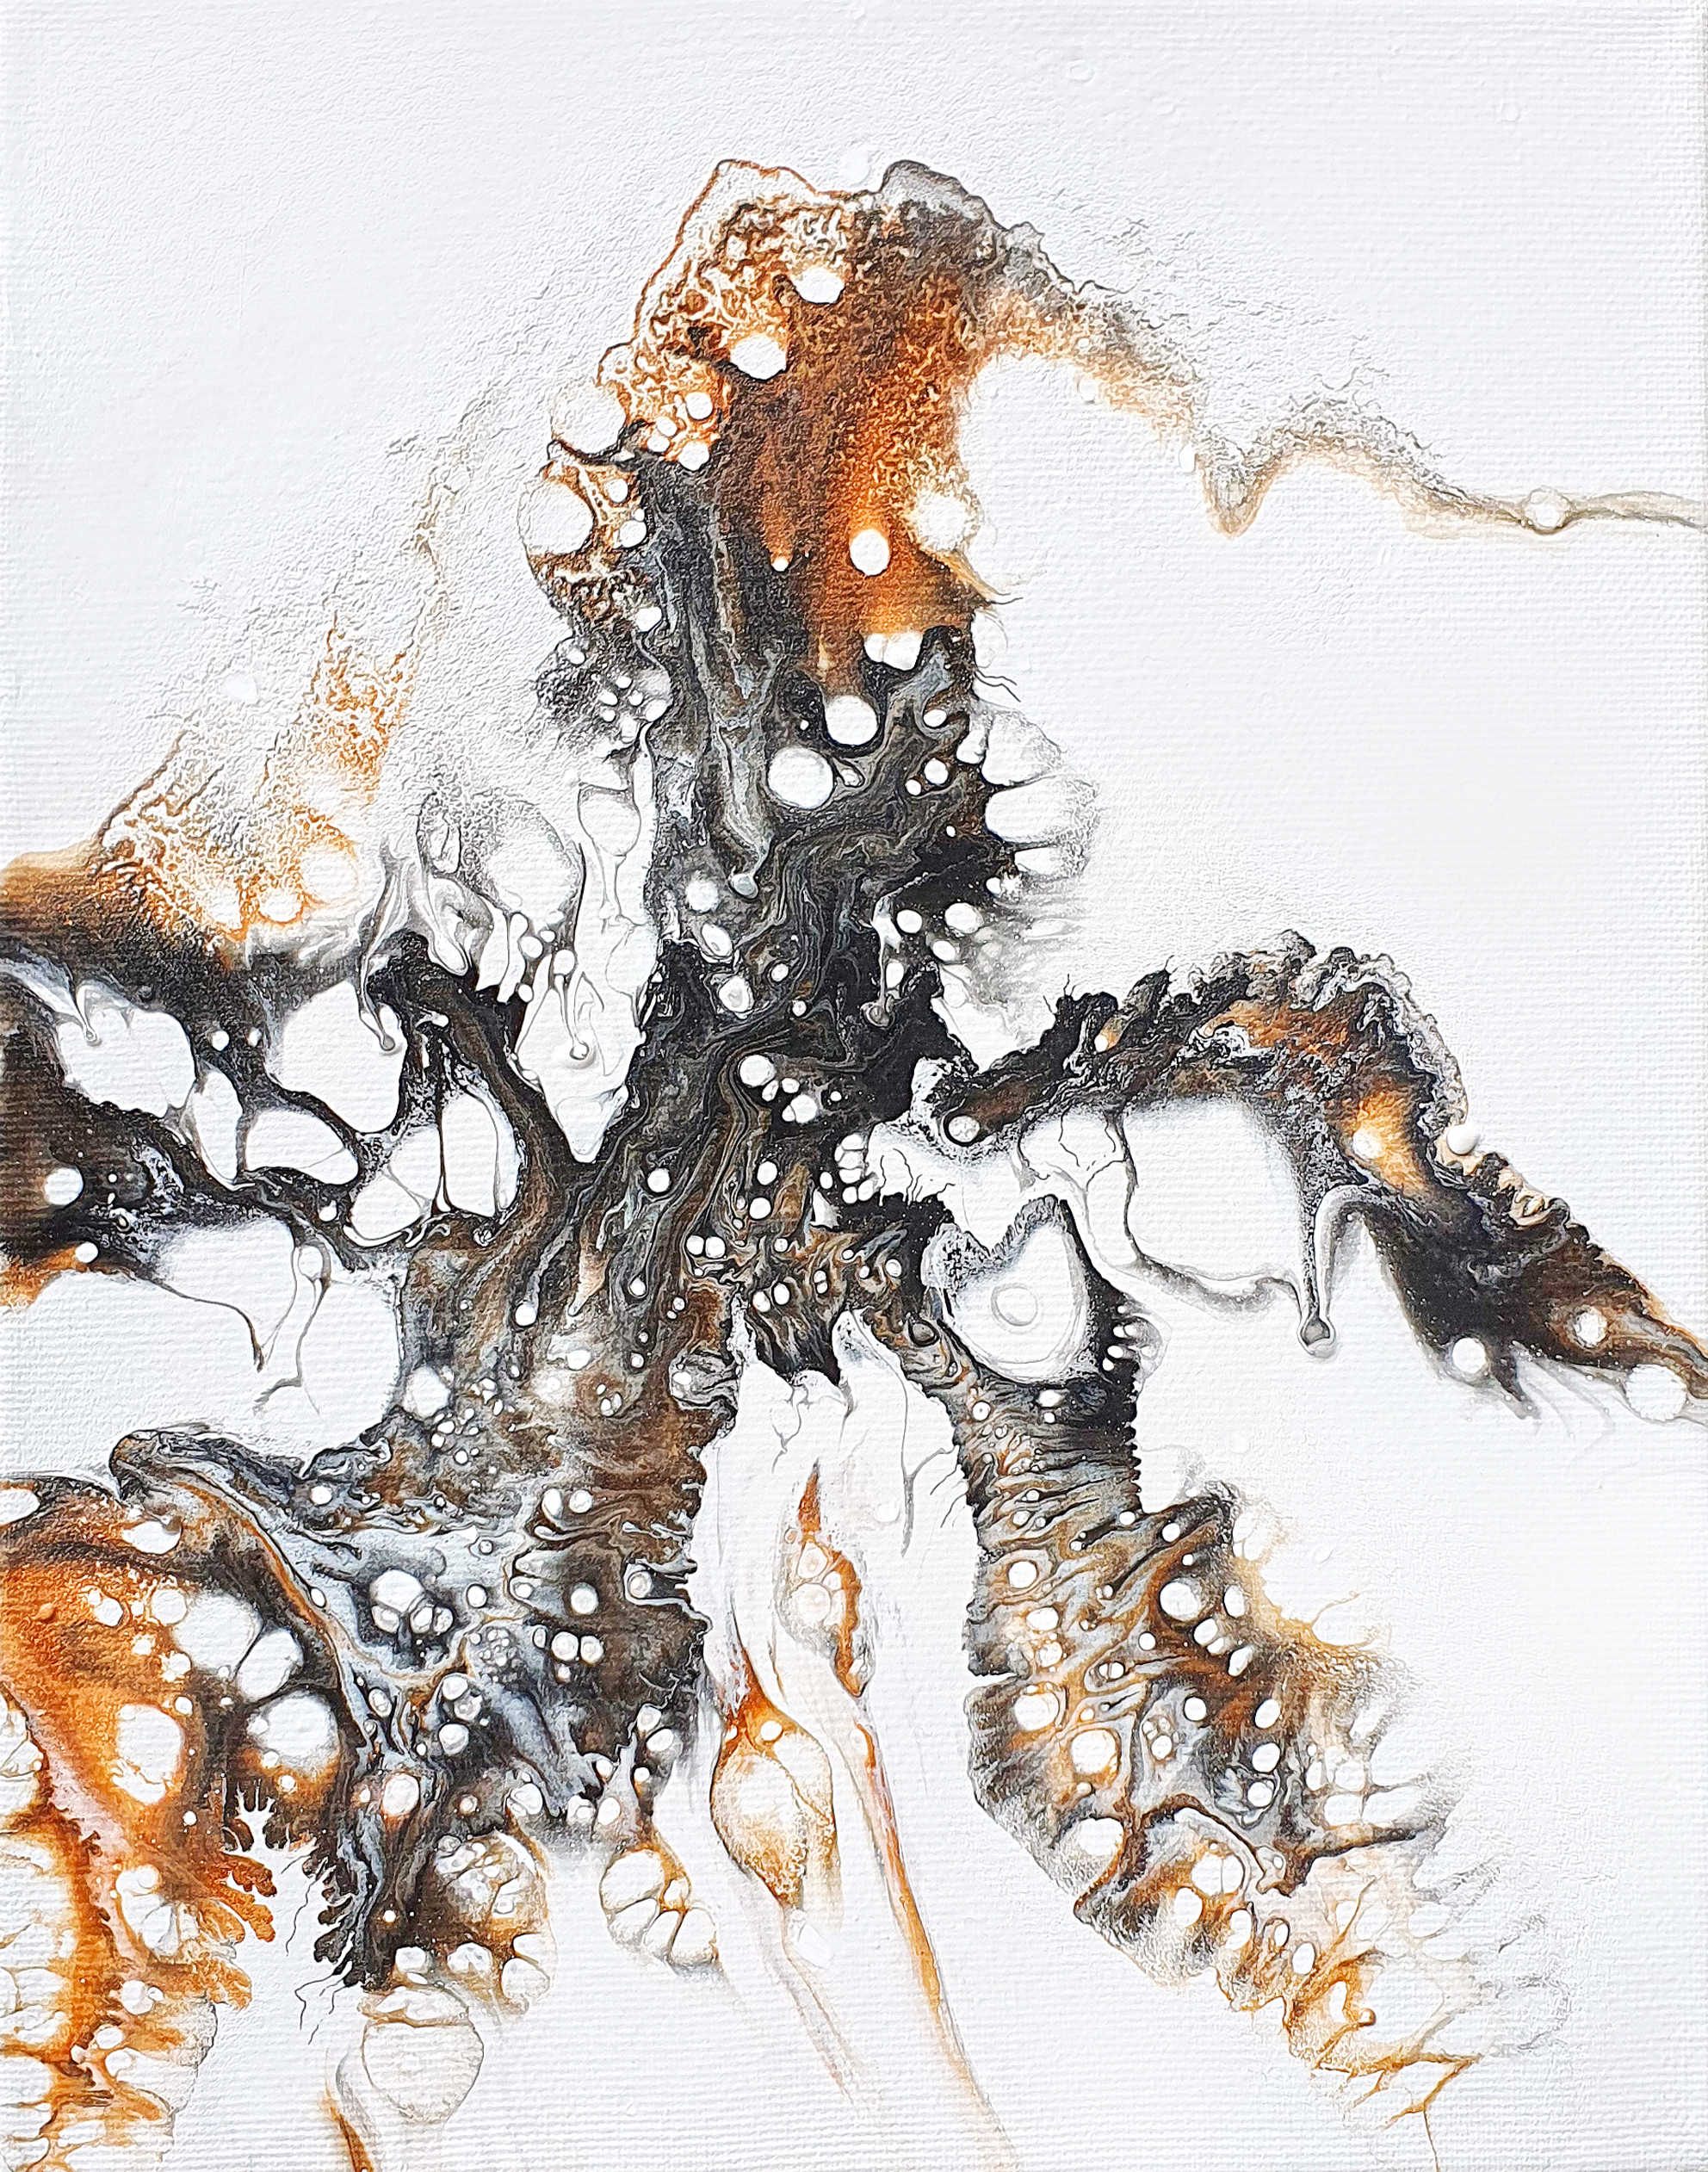 """""""Medusa"""", acrylic pouring by Calla Hueppe, Claudie Hamburg, Claudie Hüppe"""